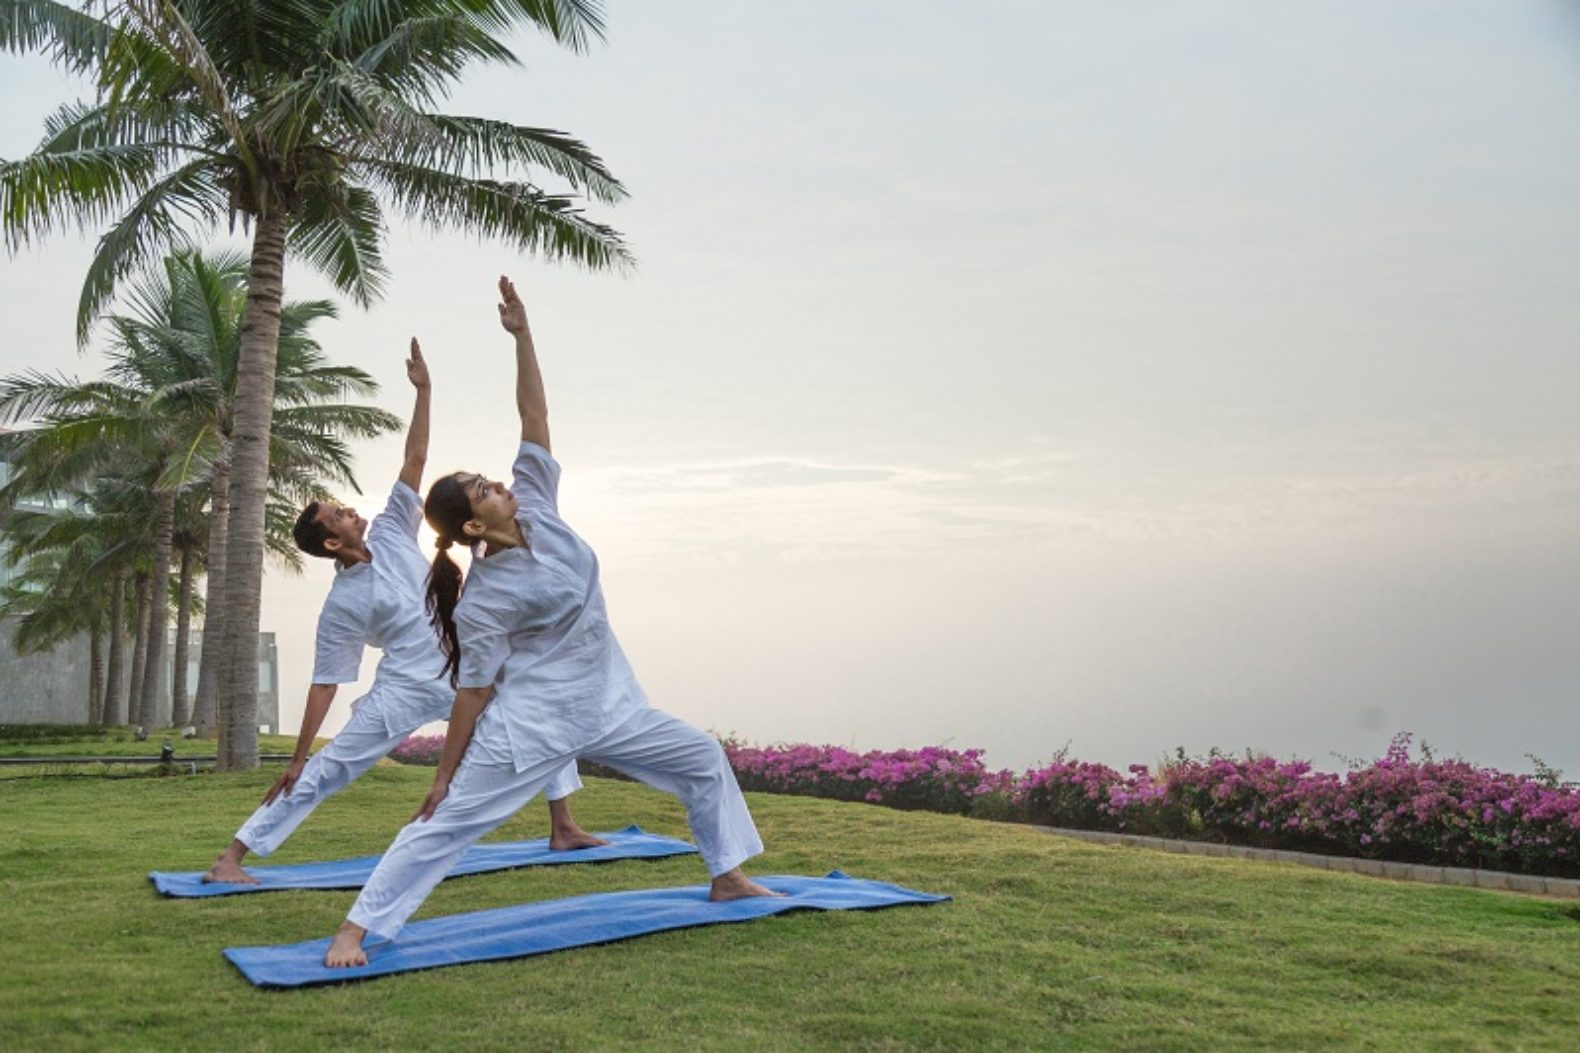 people-yoga-class-outside-grass-palmtrees-pema-health-healing-resort-india-hotel